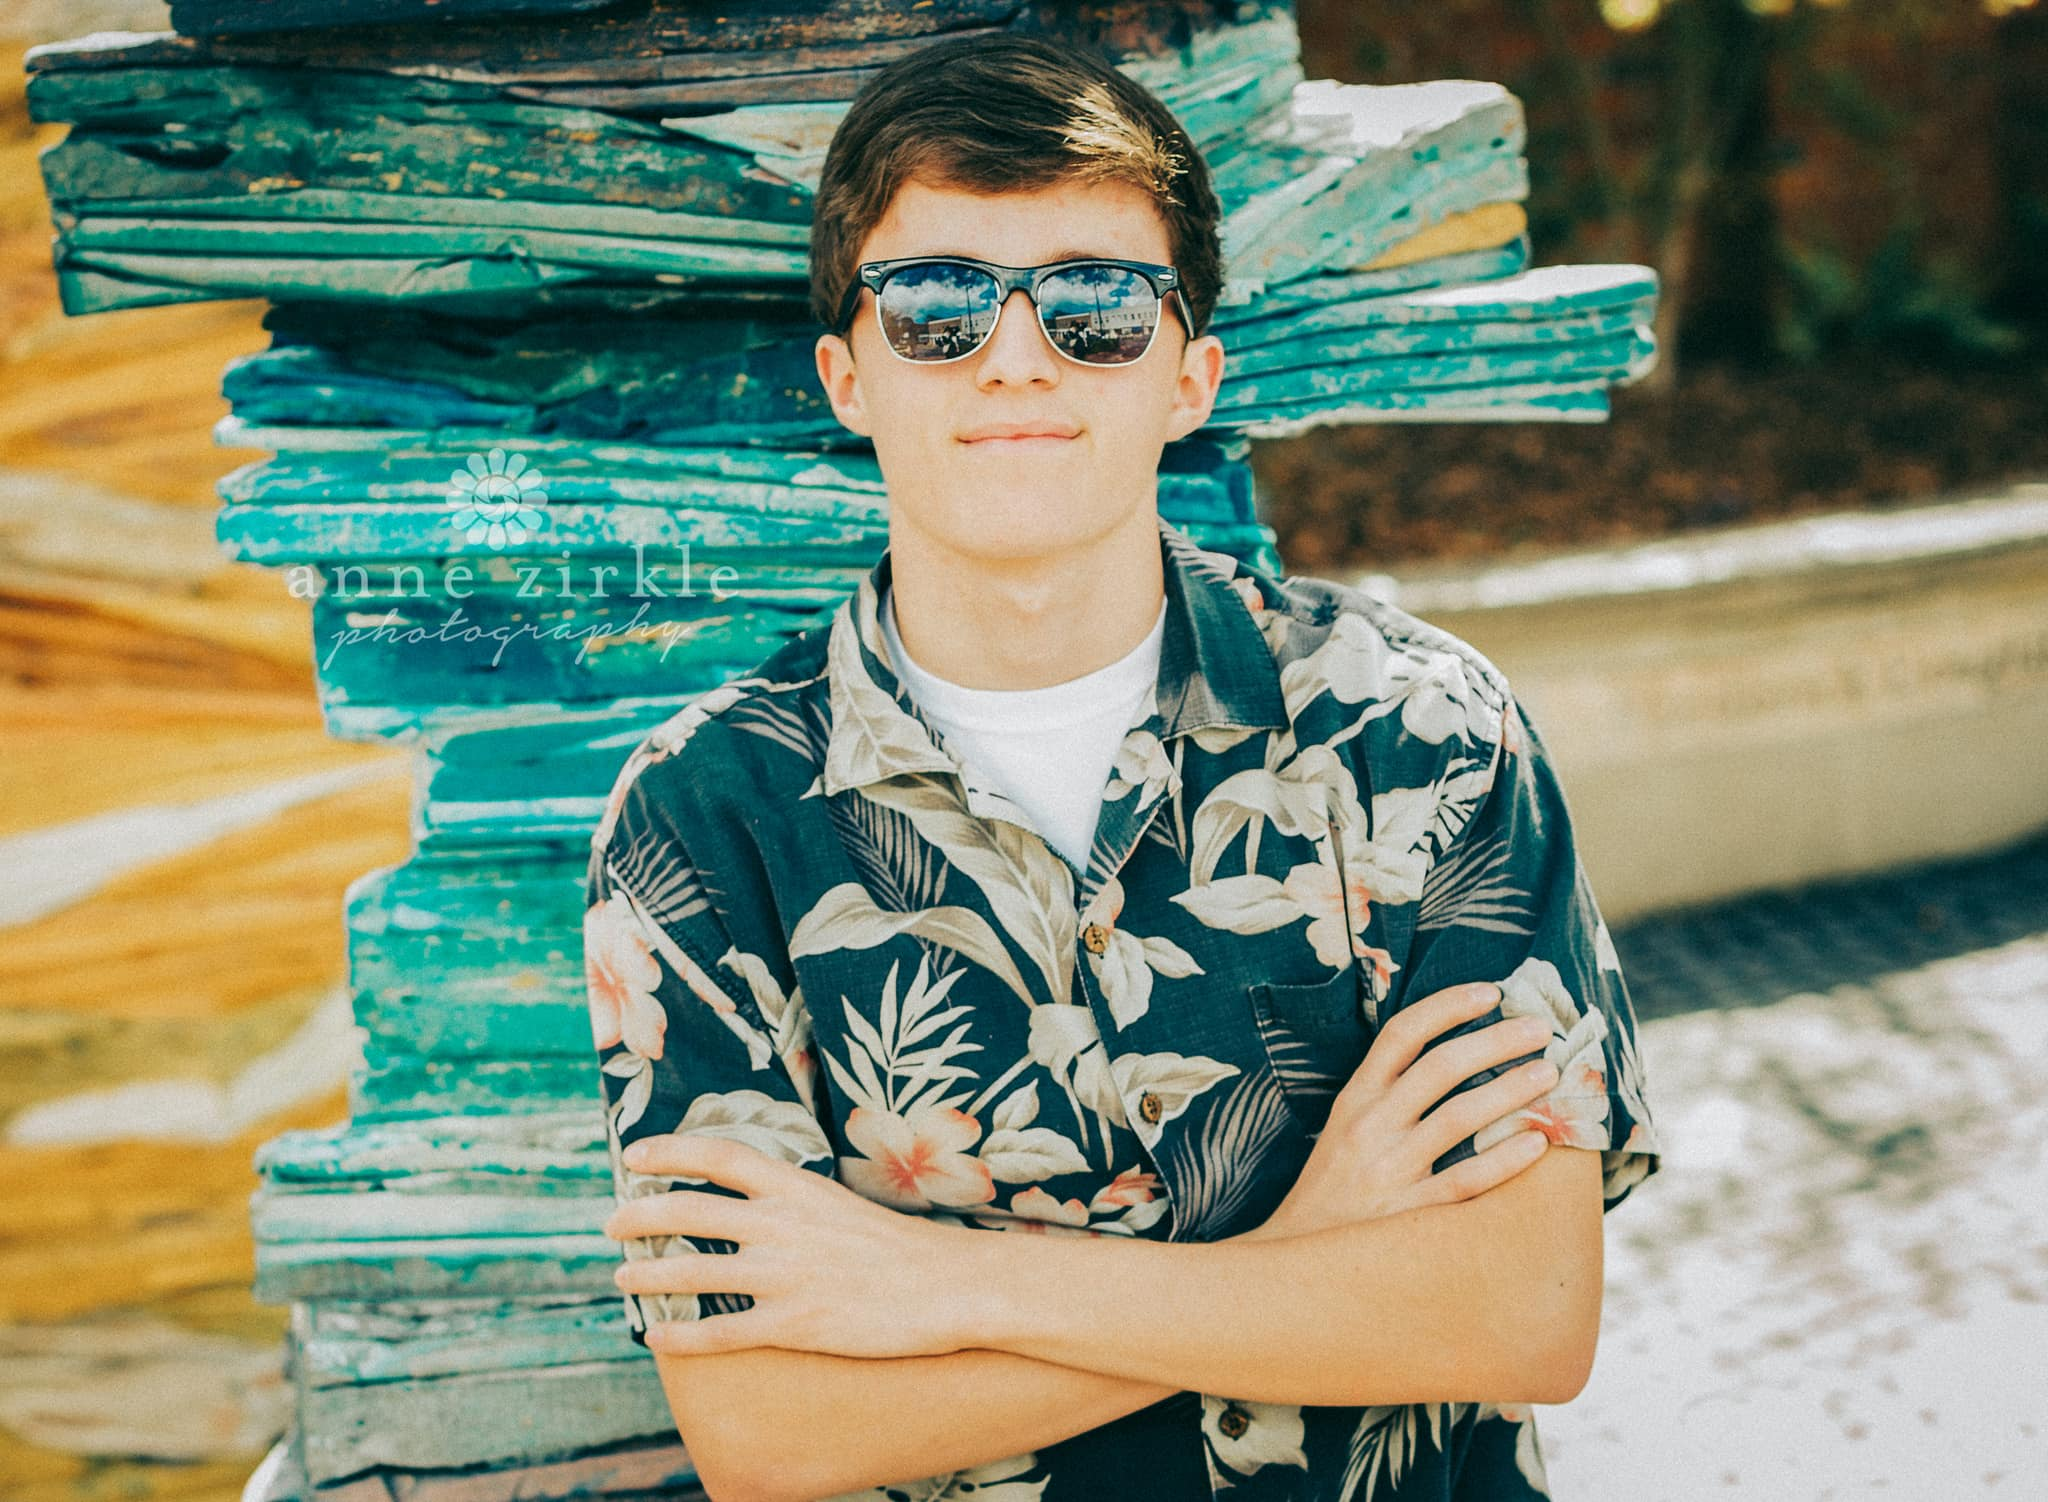 senior boy in Hawaiian shirt and sunglasses #mooresville #northcarolina #davidson #lakenorman #southiredell #pinelakeprep #highschool #highschoolsenior #highschoolseniors #seniors